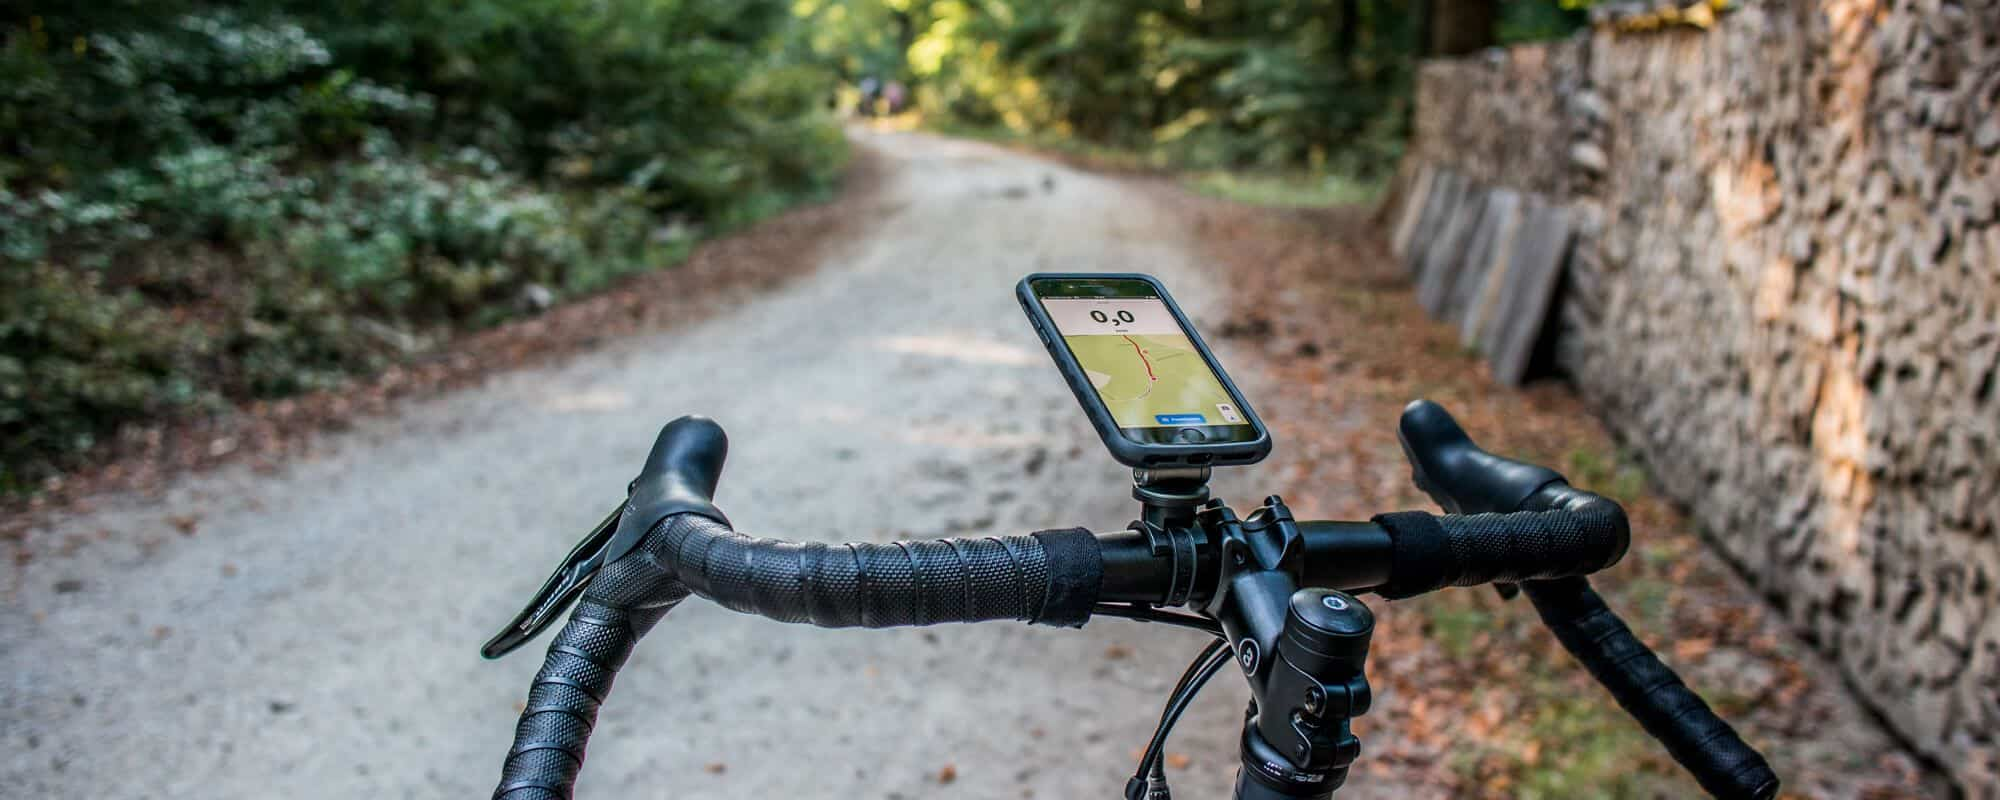 Topeak Ridecase in practice - reliable mobile phone bike mount for the iPhone